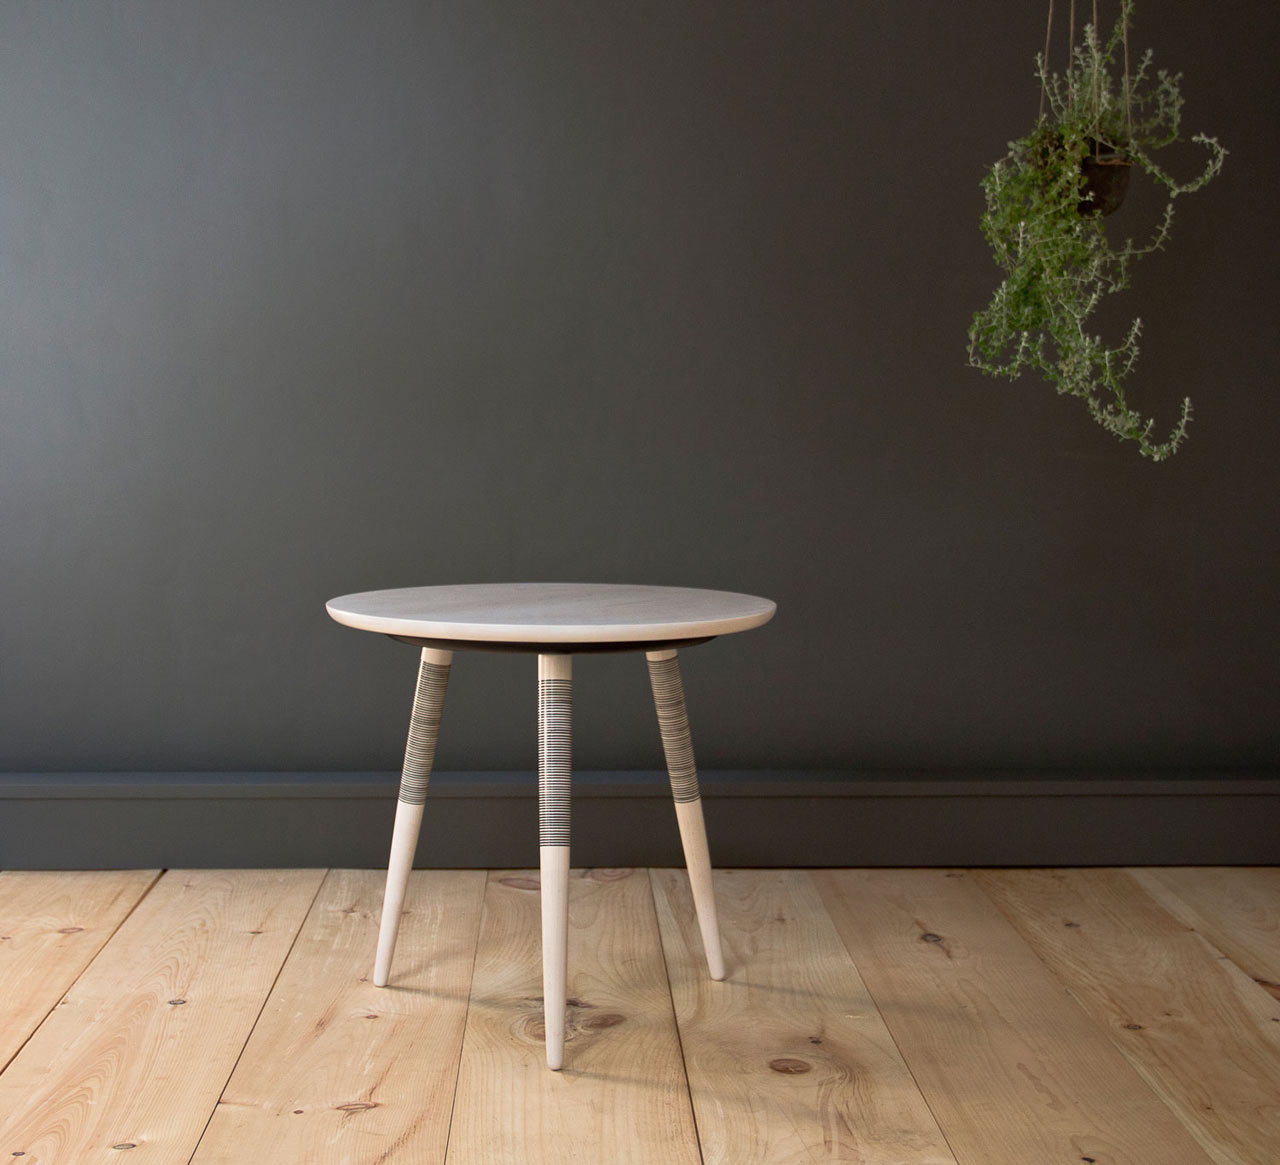 A table inspired by japanese hand tattooing design milk for Design table replica